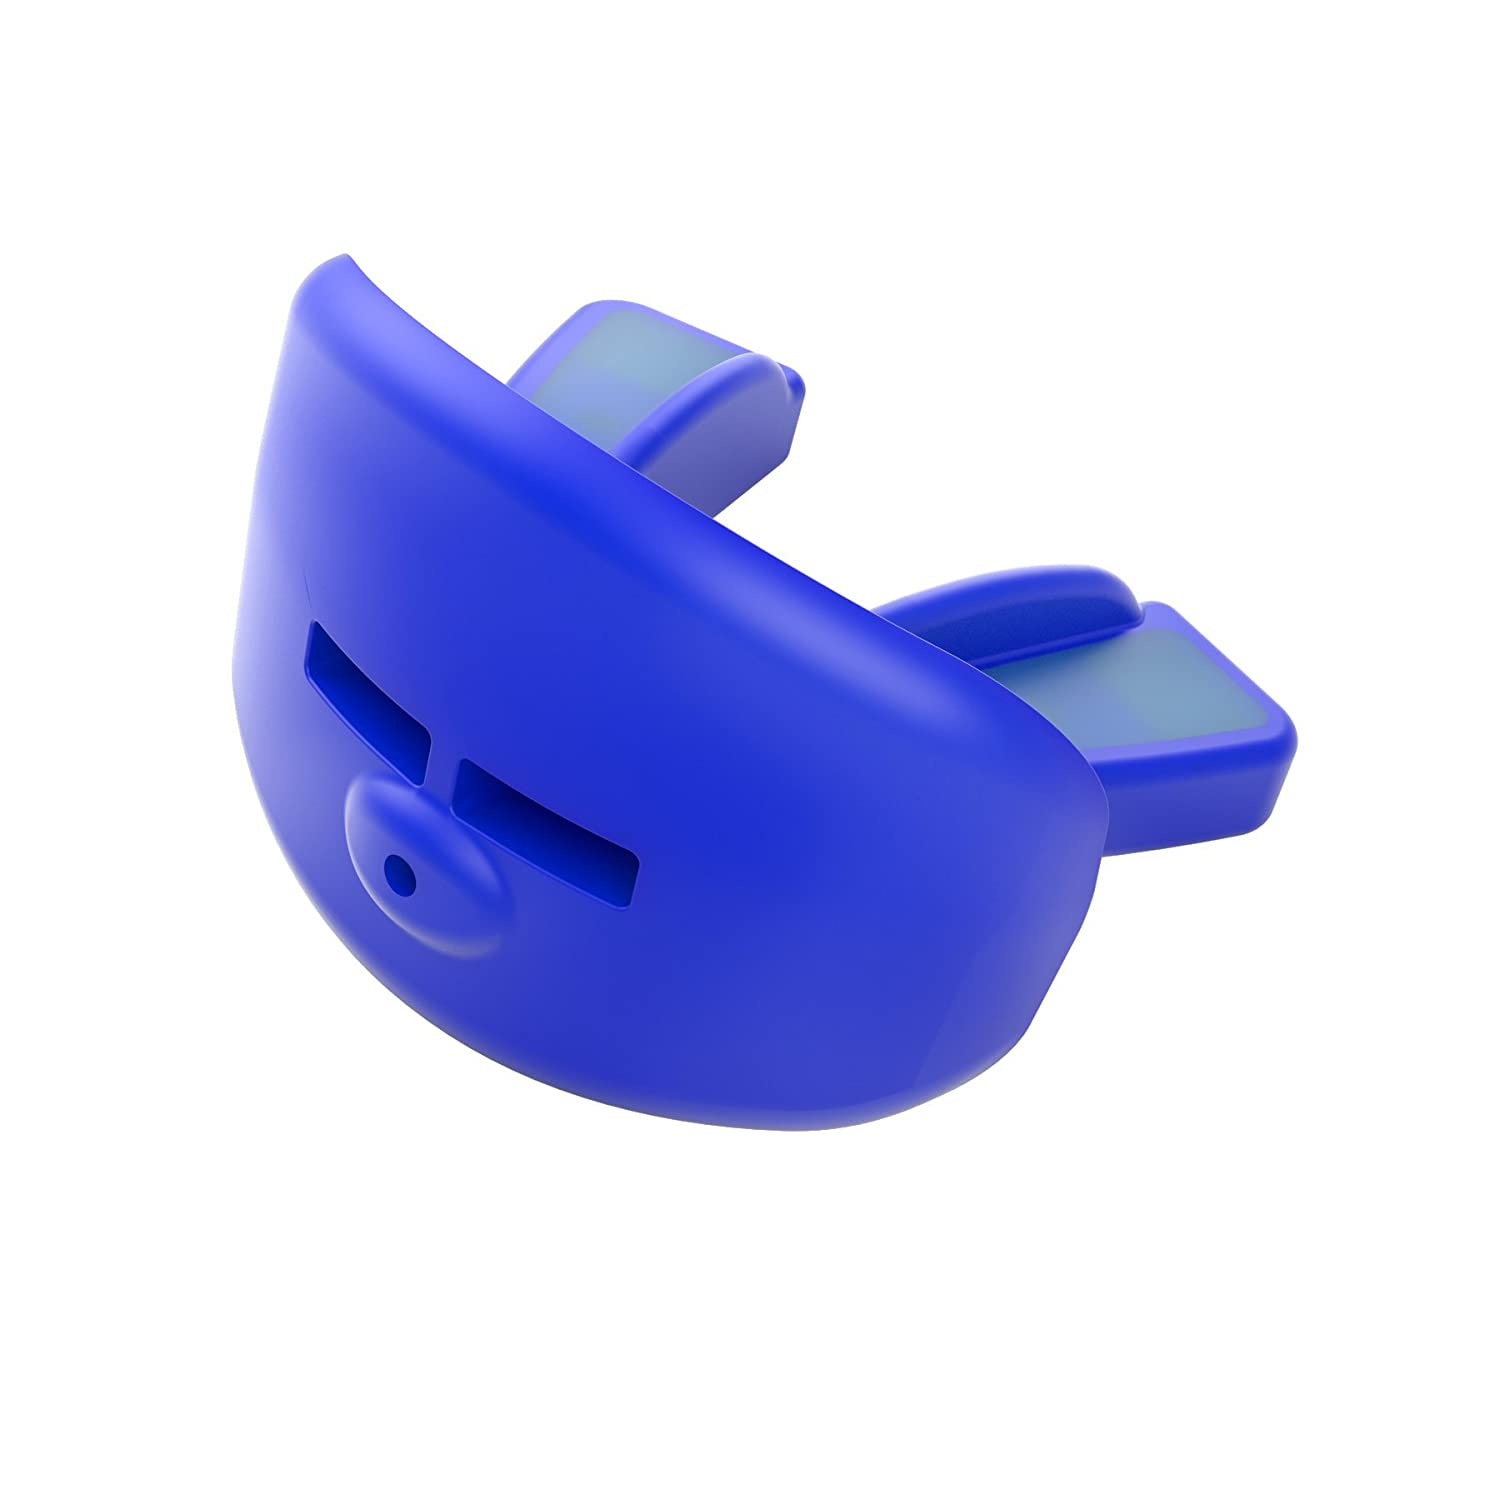 Details about  /Shock Doctor Low Profile Flavor Fusion Lip Guard Mouthguard Football Fruit Punch